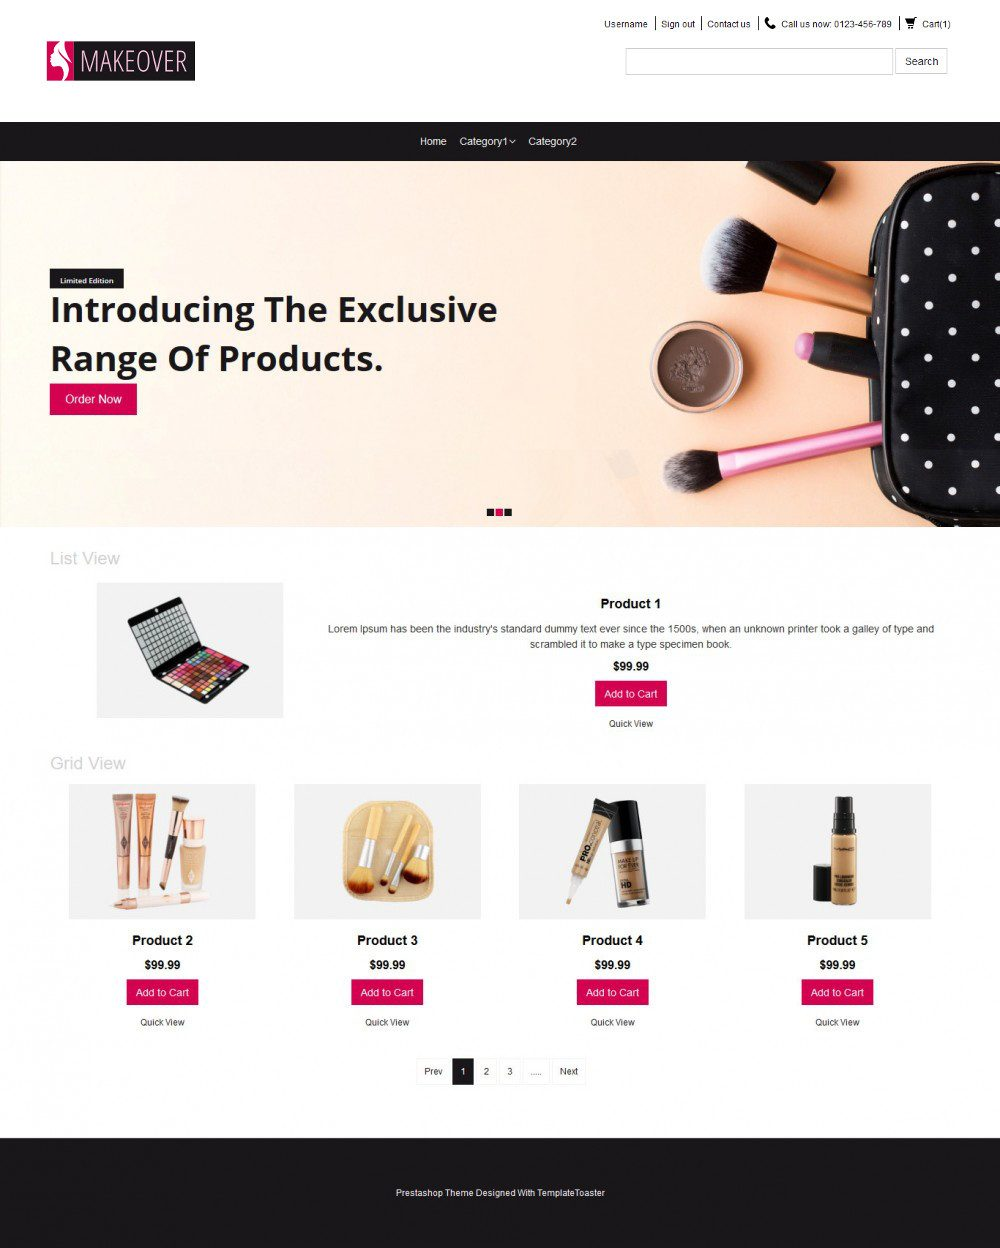 Makeover Makeup Accessories Virtuemart Template